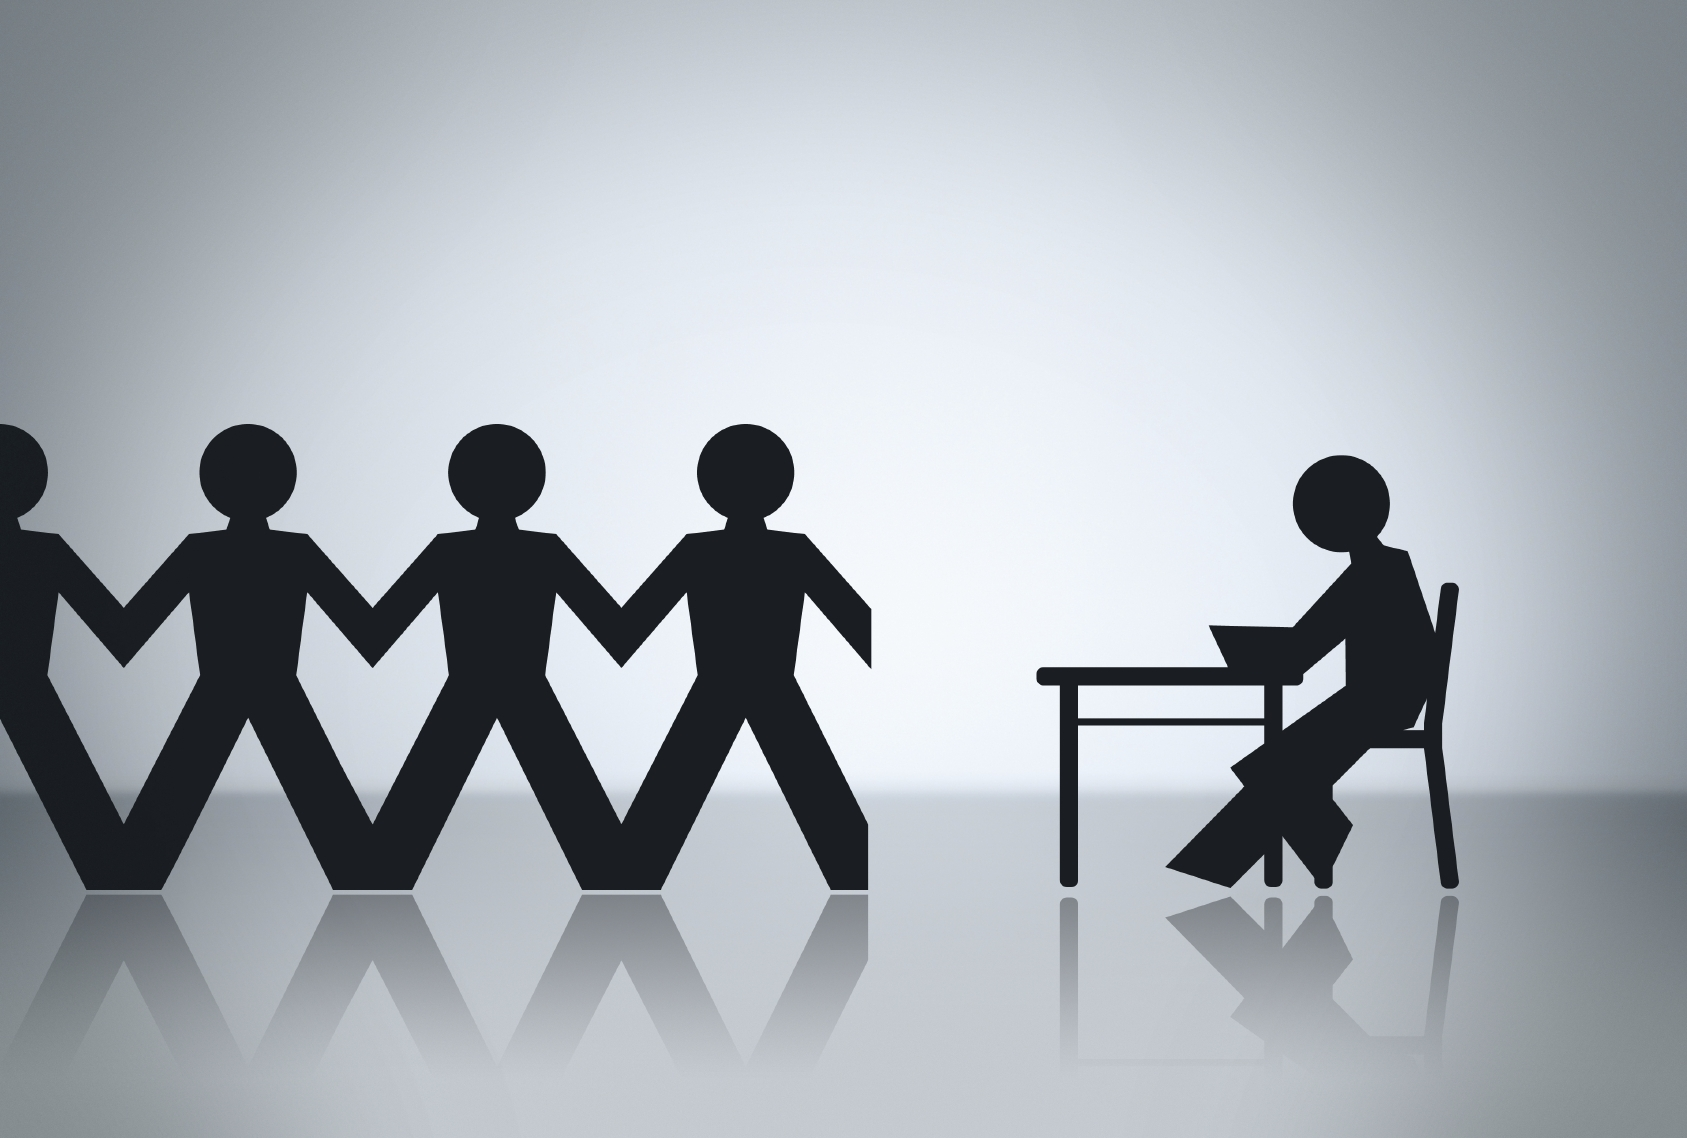 5 tips to hire the right people, no matter your company's size